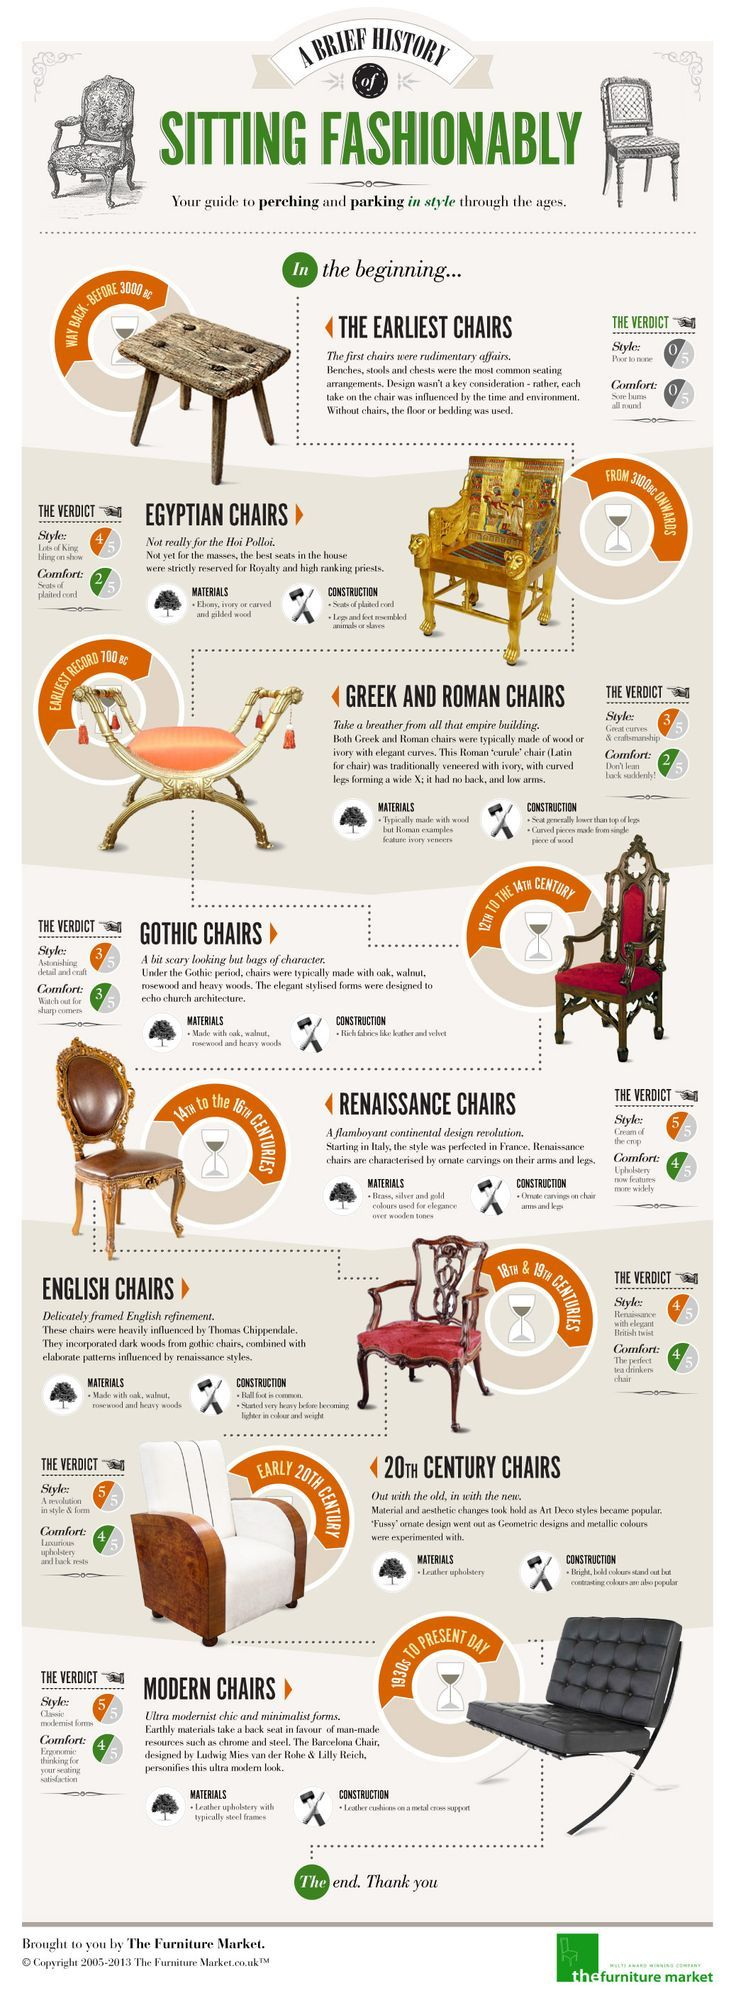 A brief history of chairs and their many forms over the years brought to  you by